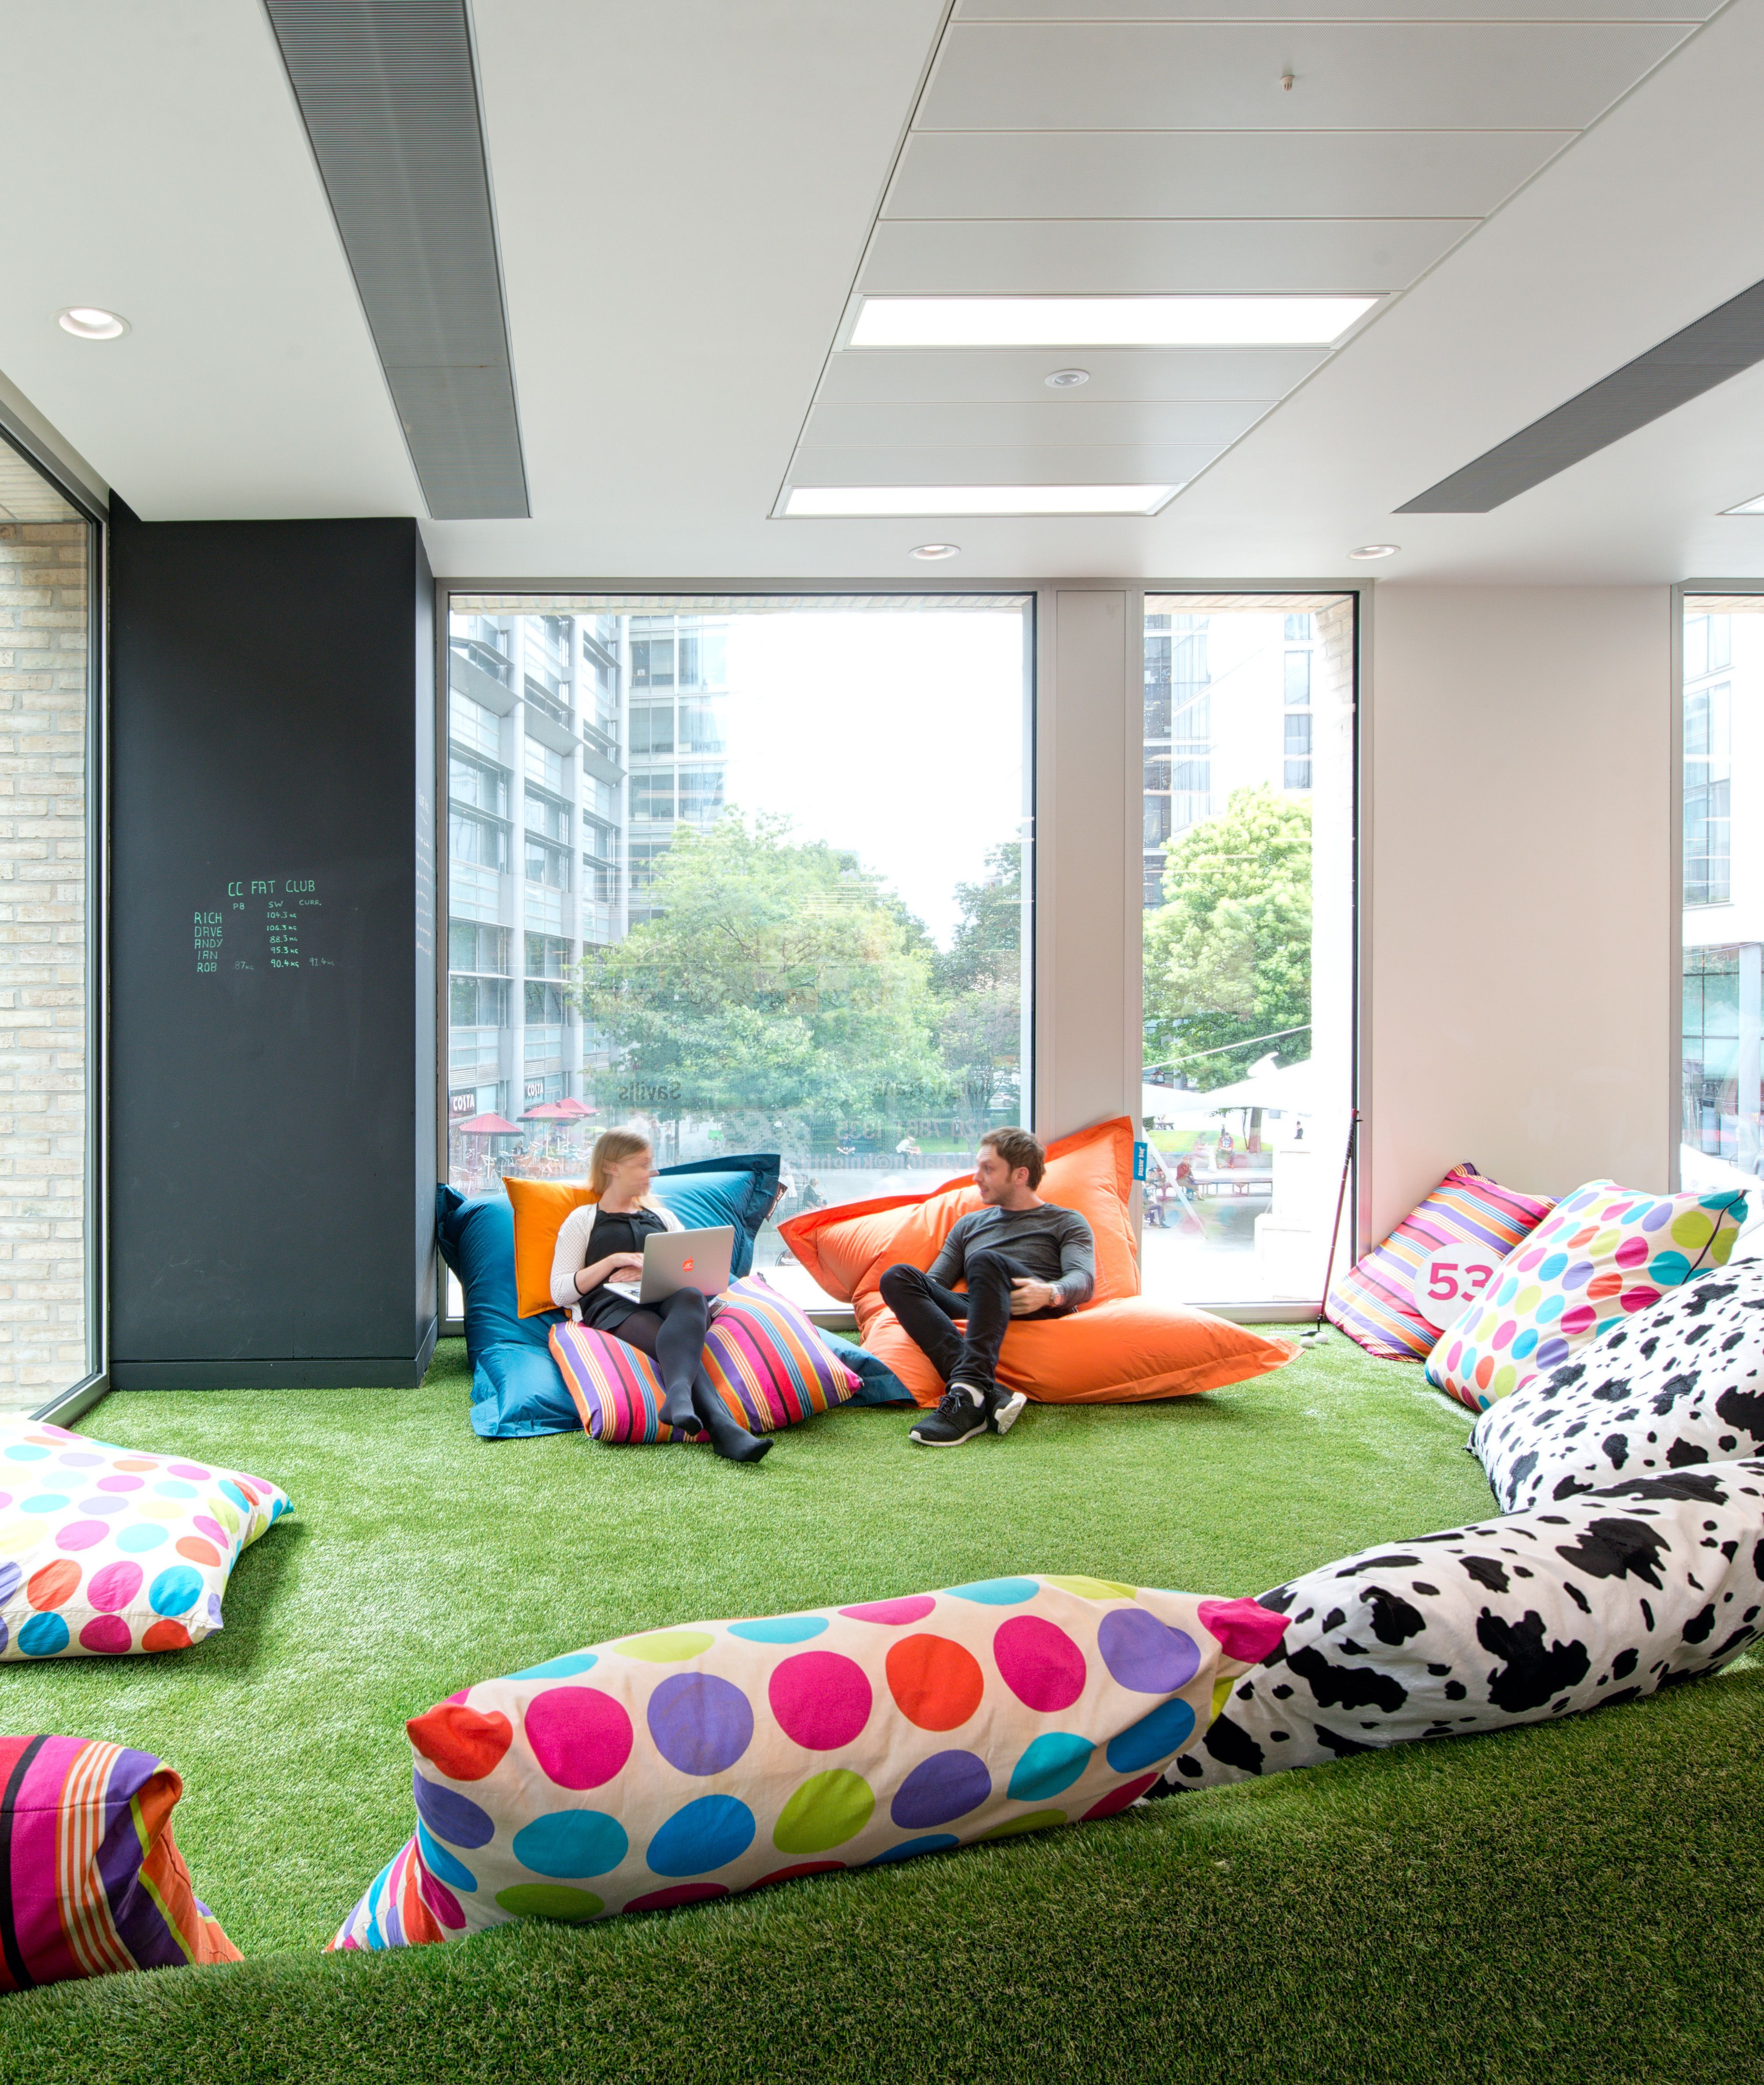 Would Lounge Style Sofa Areas Blackboard Walls Hammock Chairs Video Games And An Artificial Grass Covered Innovative Office New Home Designs Office Fit Out